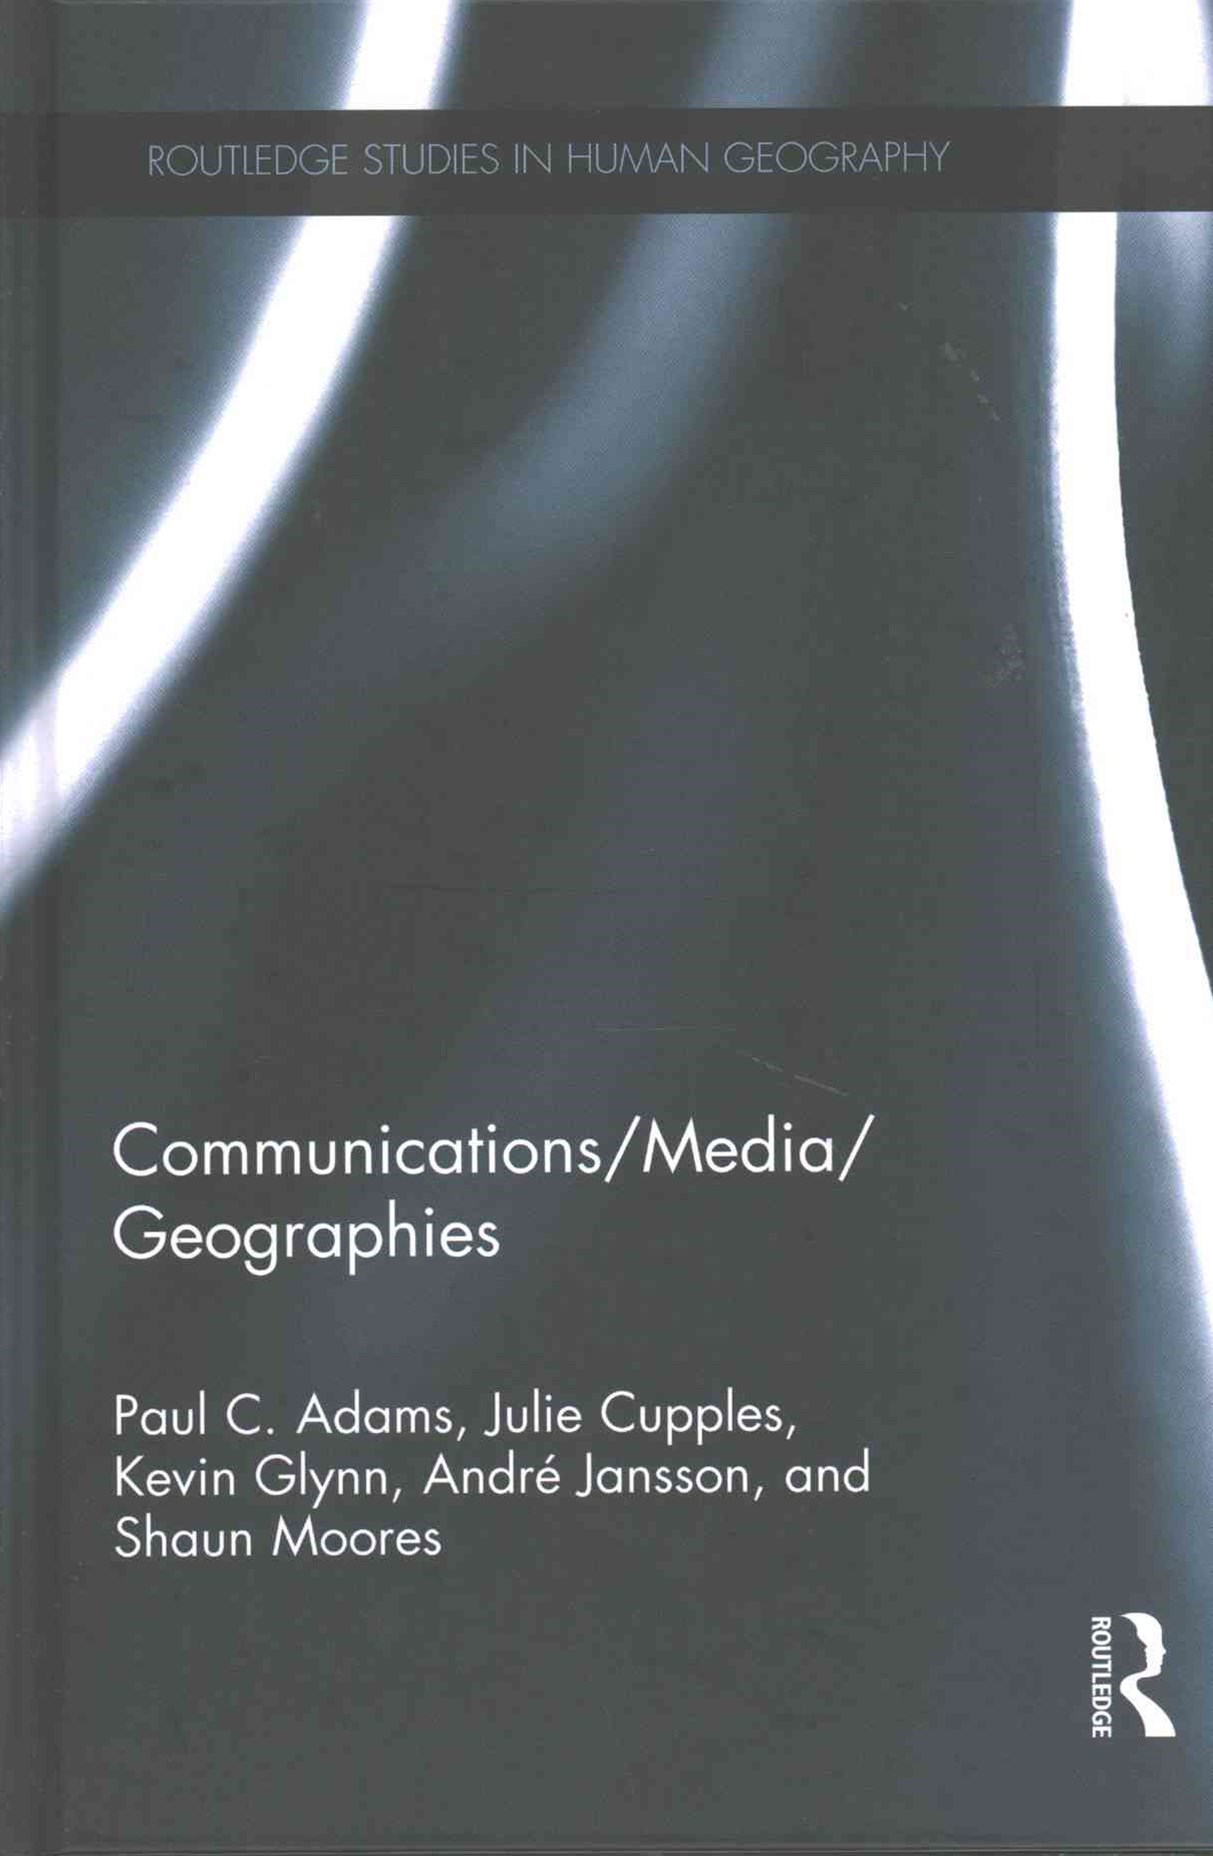 Communications/Media/Geographies